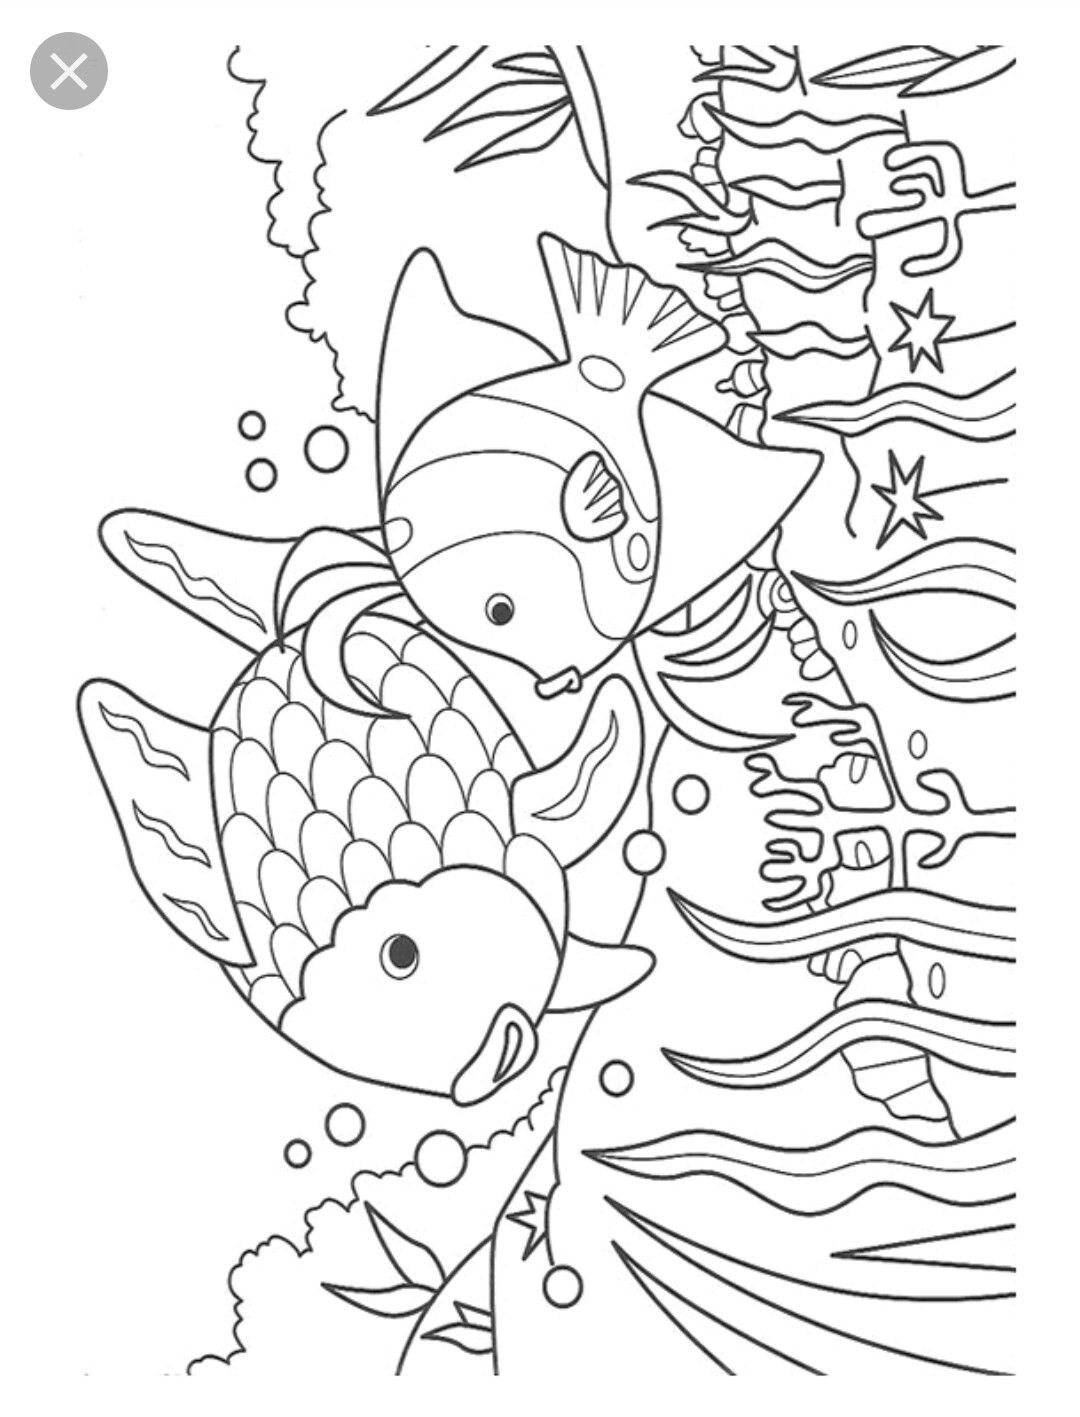 44+ Print fish coloring pages info